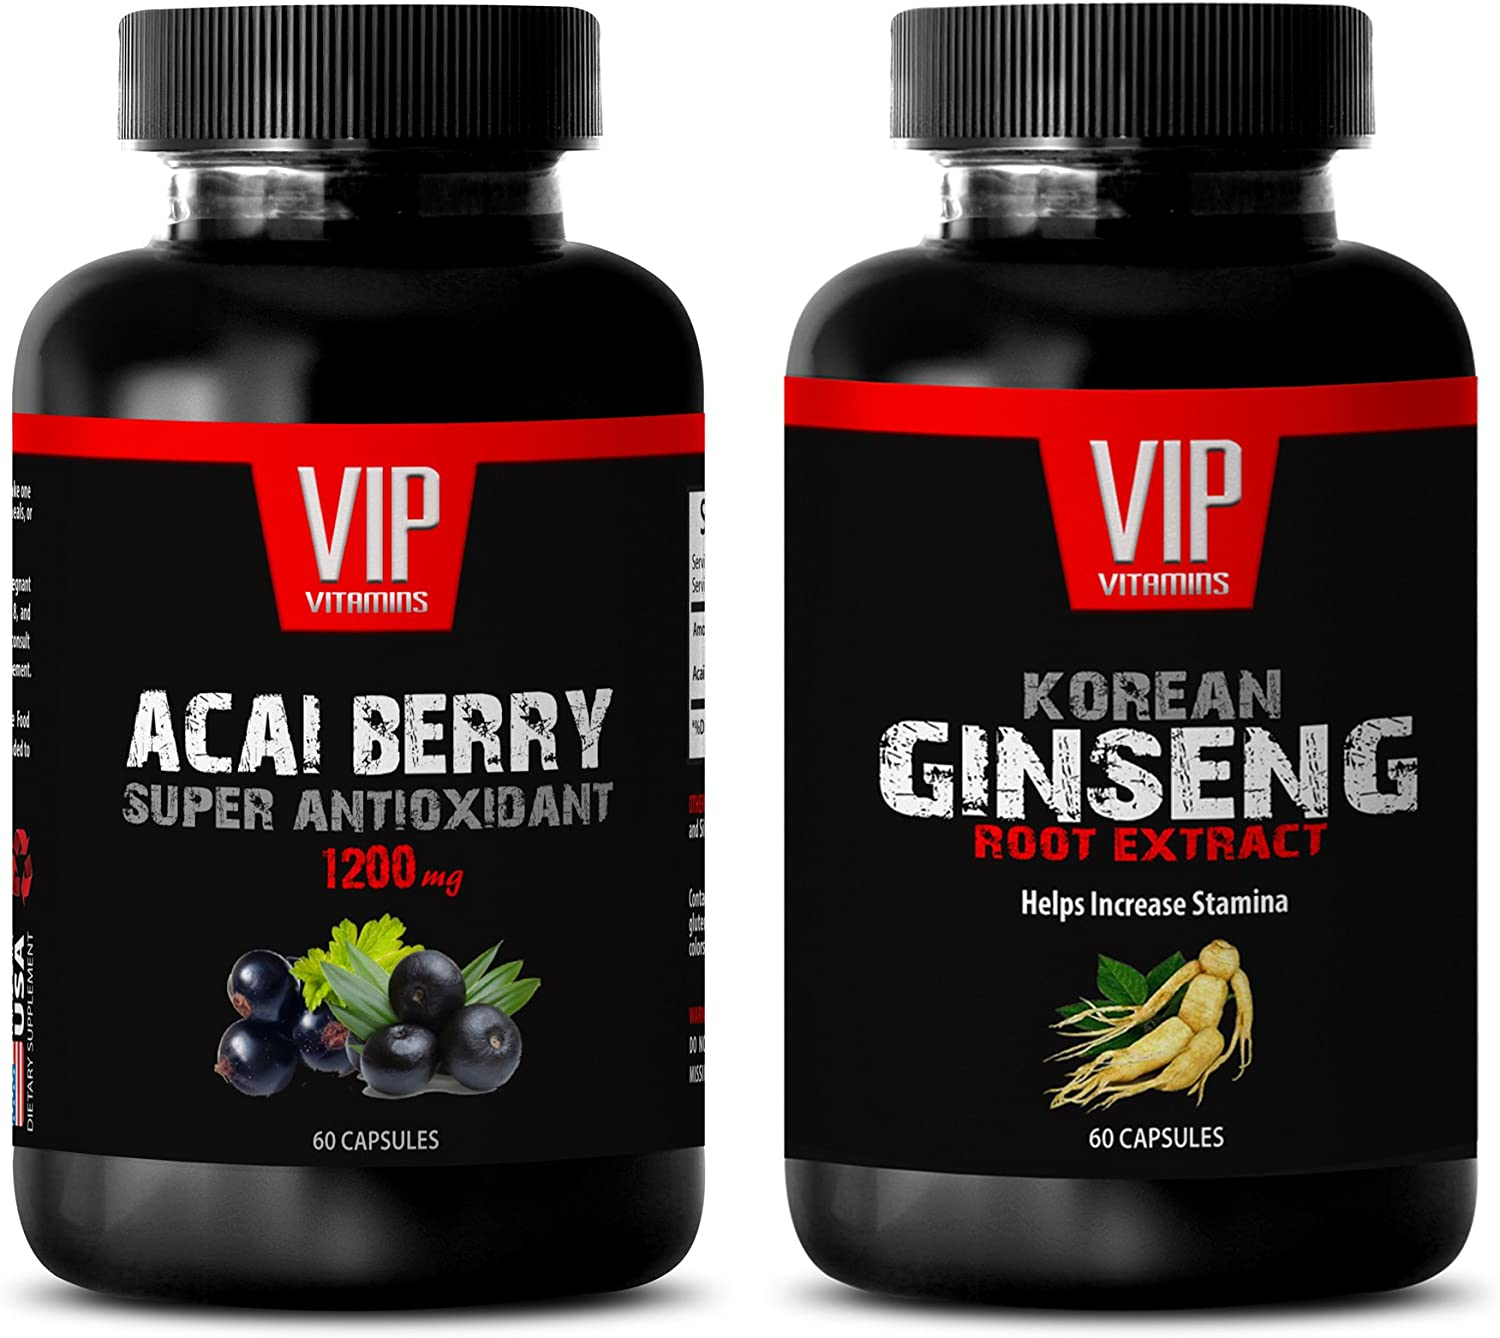 Female libido Booster - ACAI Berry Extract – Korean Ginseng Extract - acai Berry Diet - 2 Bottles Combo (60 Capsules + 60 Capsules)